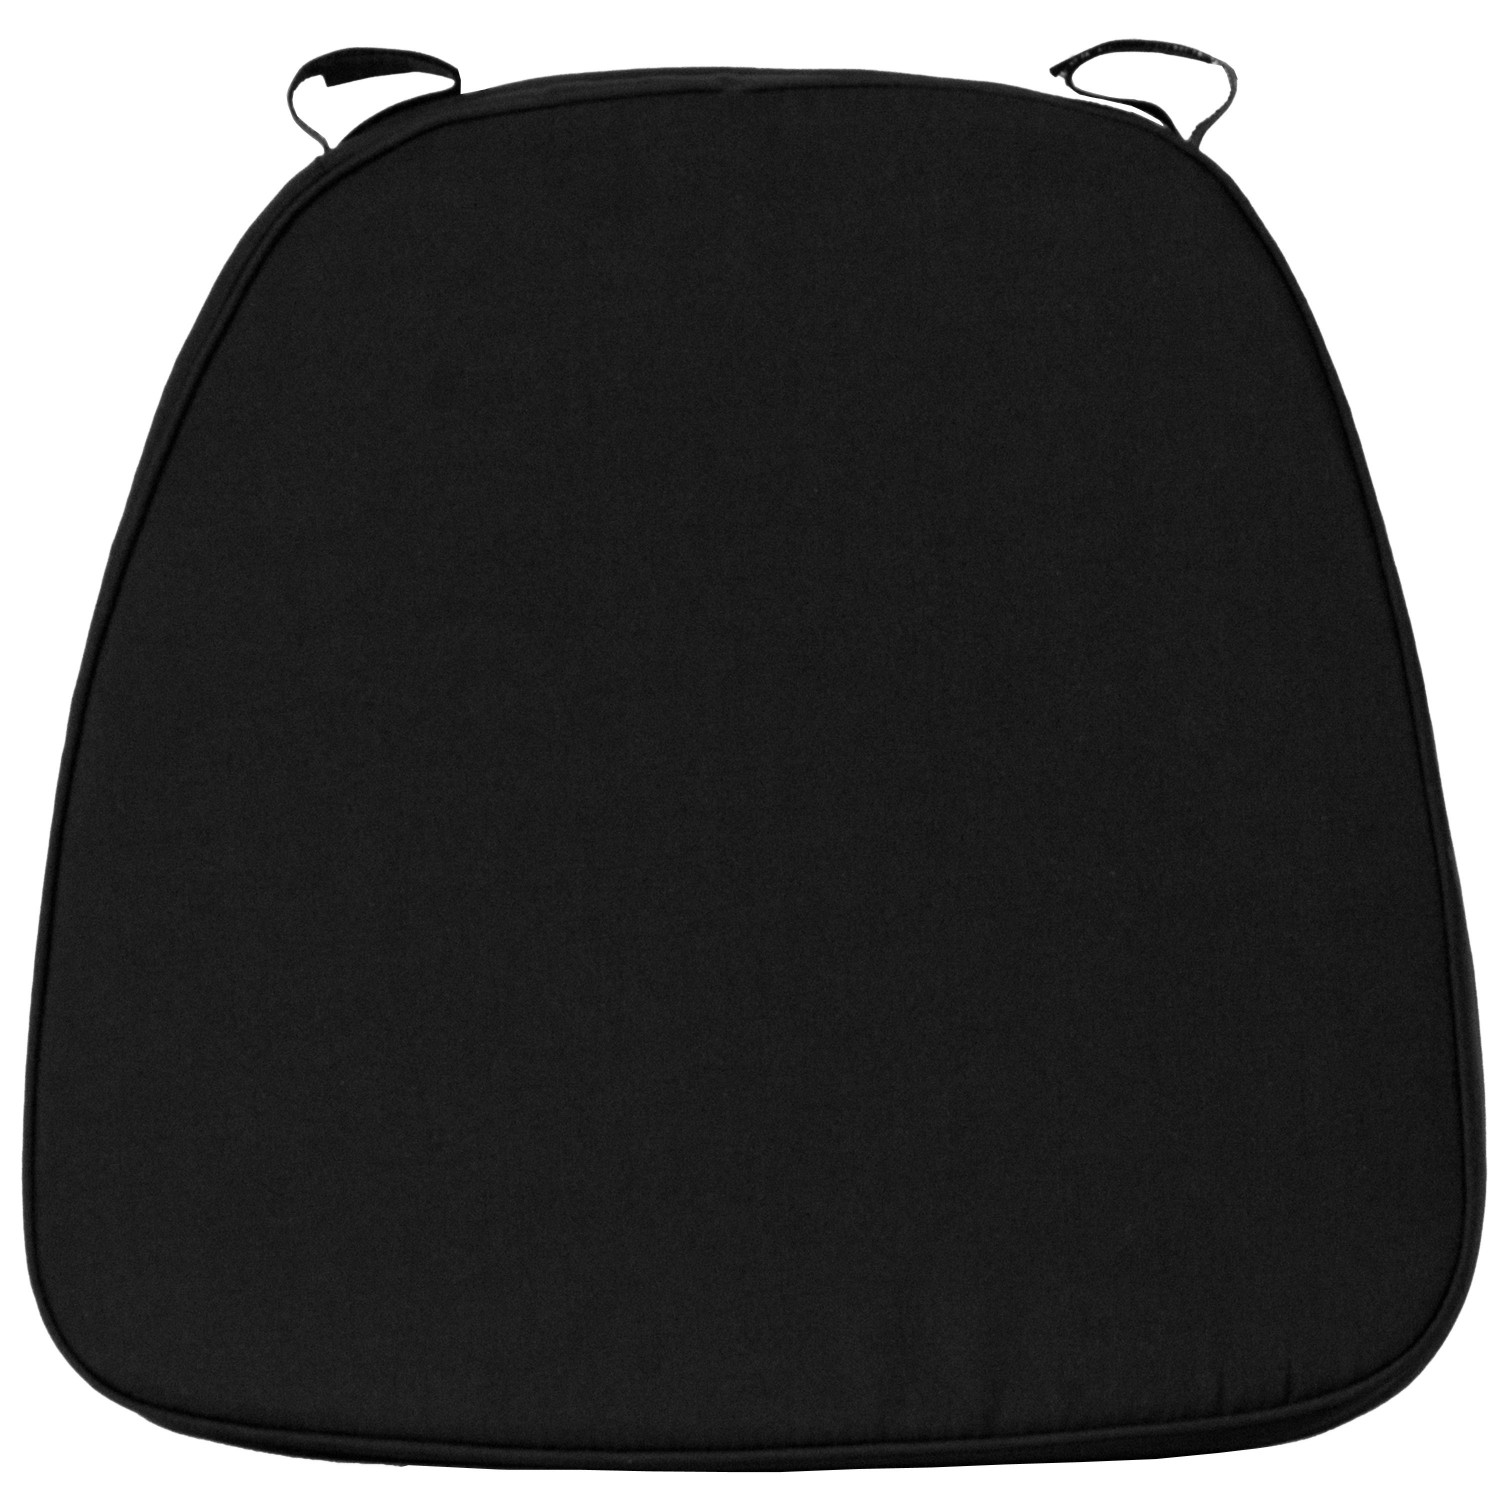 Flash Furniture SZ-BLACK-SOFT-BAR-GG Soft Black Fabric Chiavari Cushion for Wood Chiavari Bar Stools